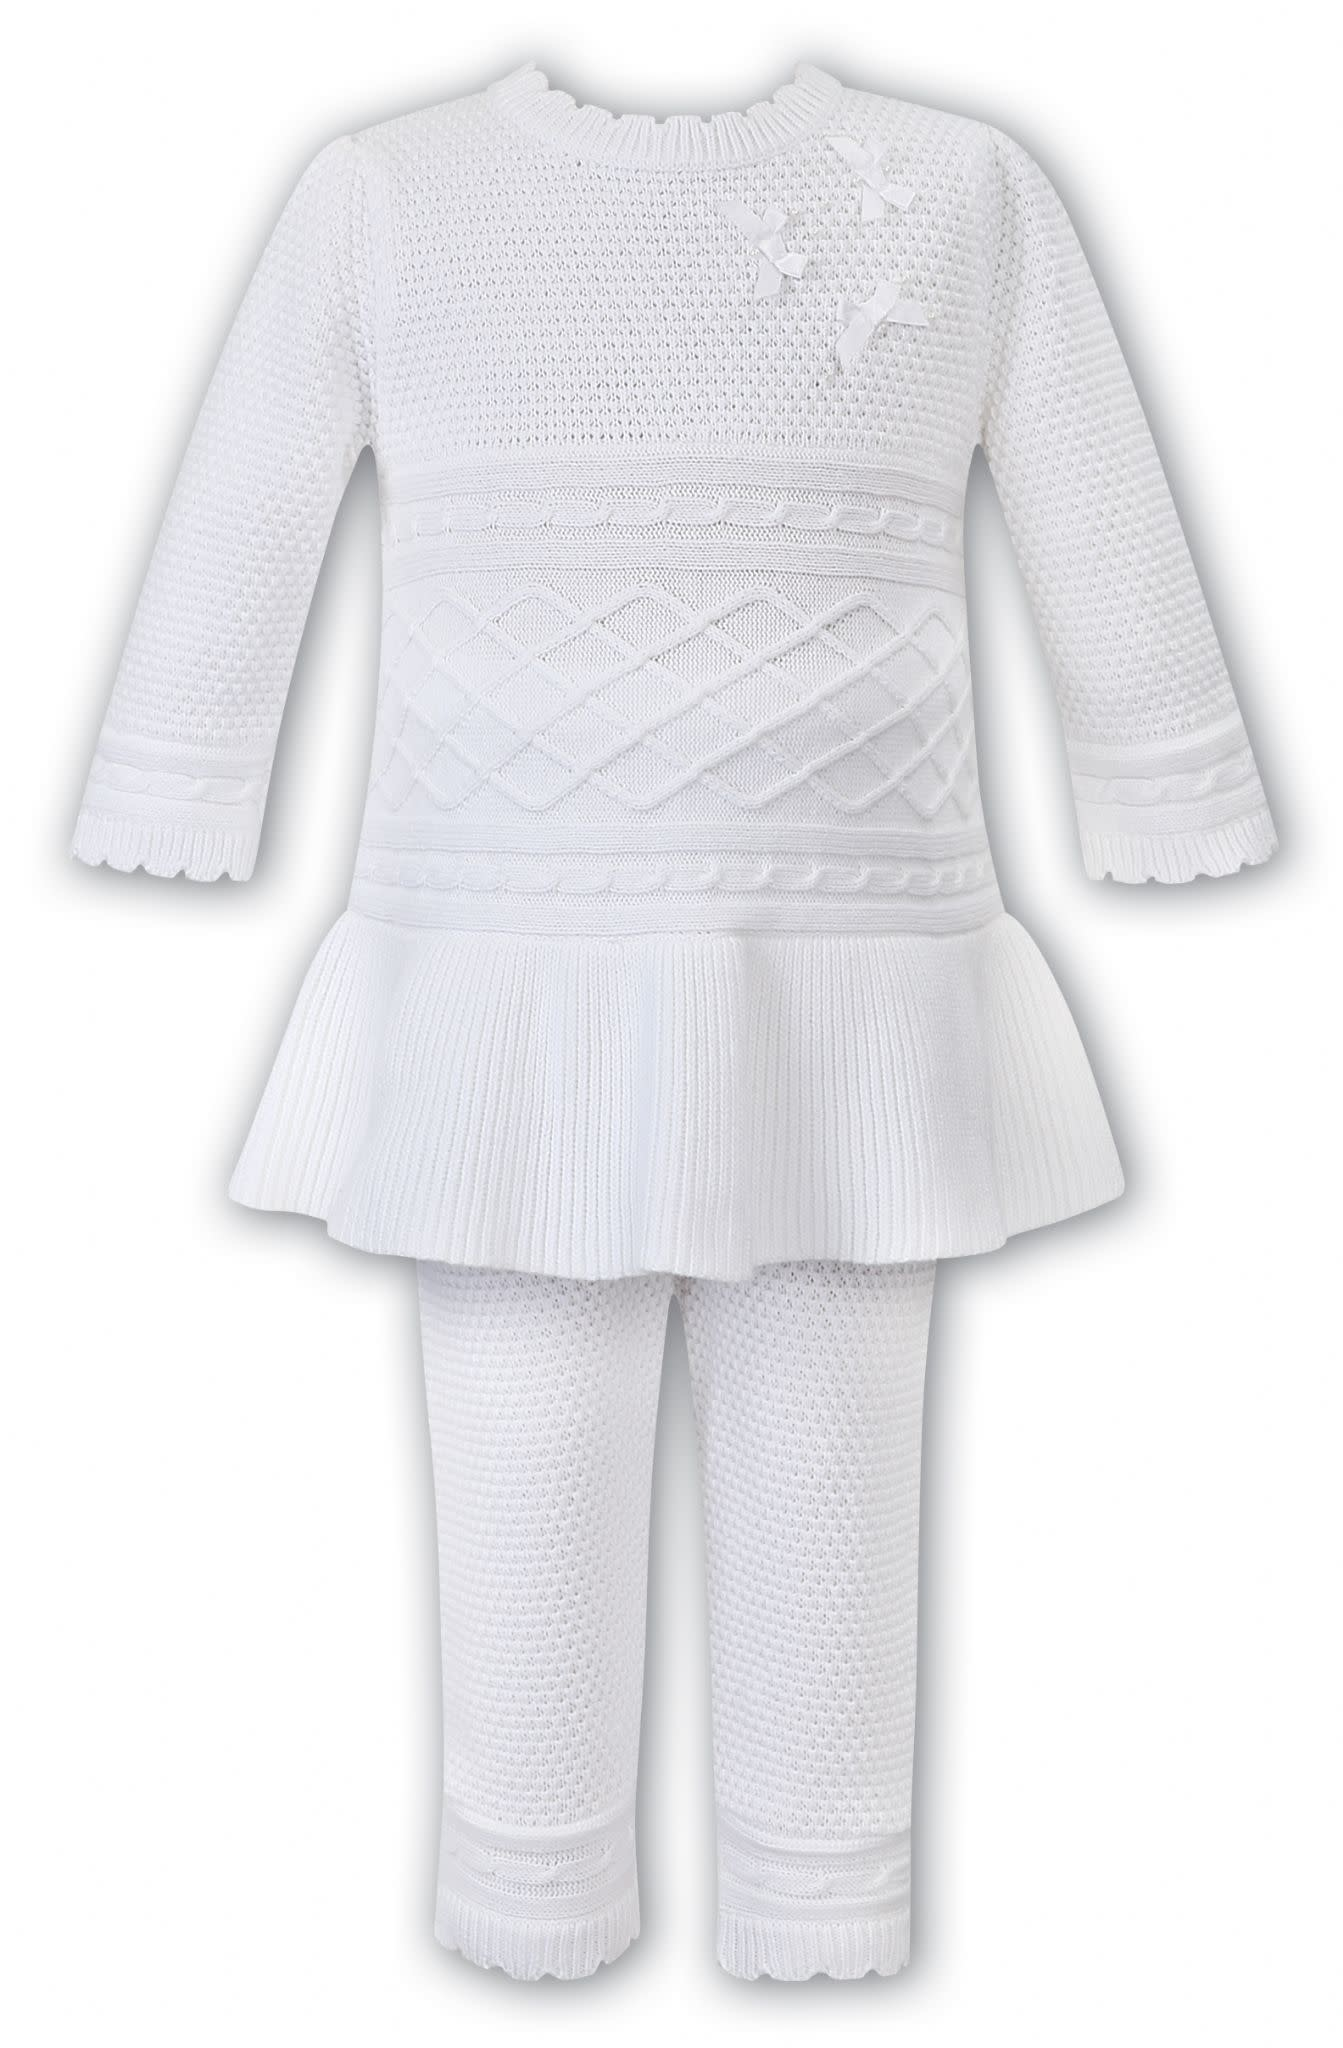 Sarah Louise Dani Girls White Knitted 2 Piece Top and Trouser Set D09359 Age 3 Years